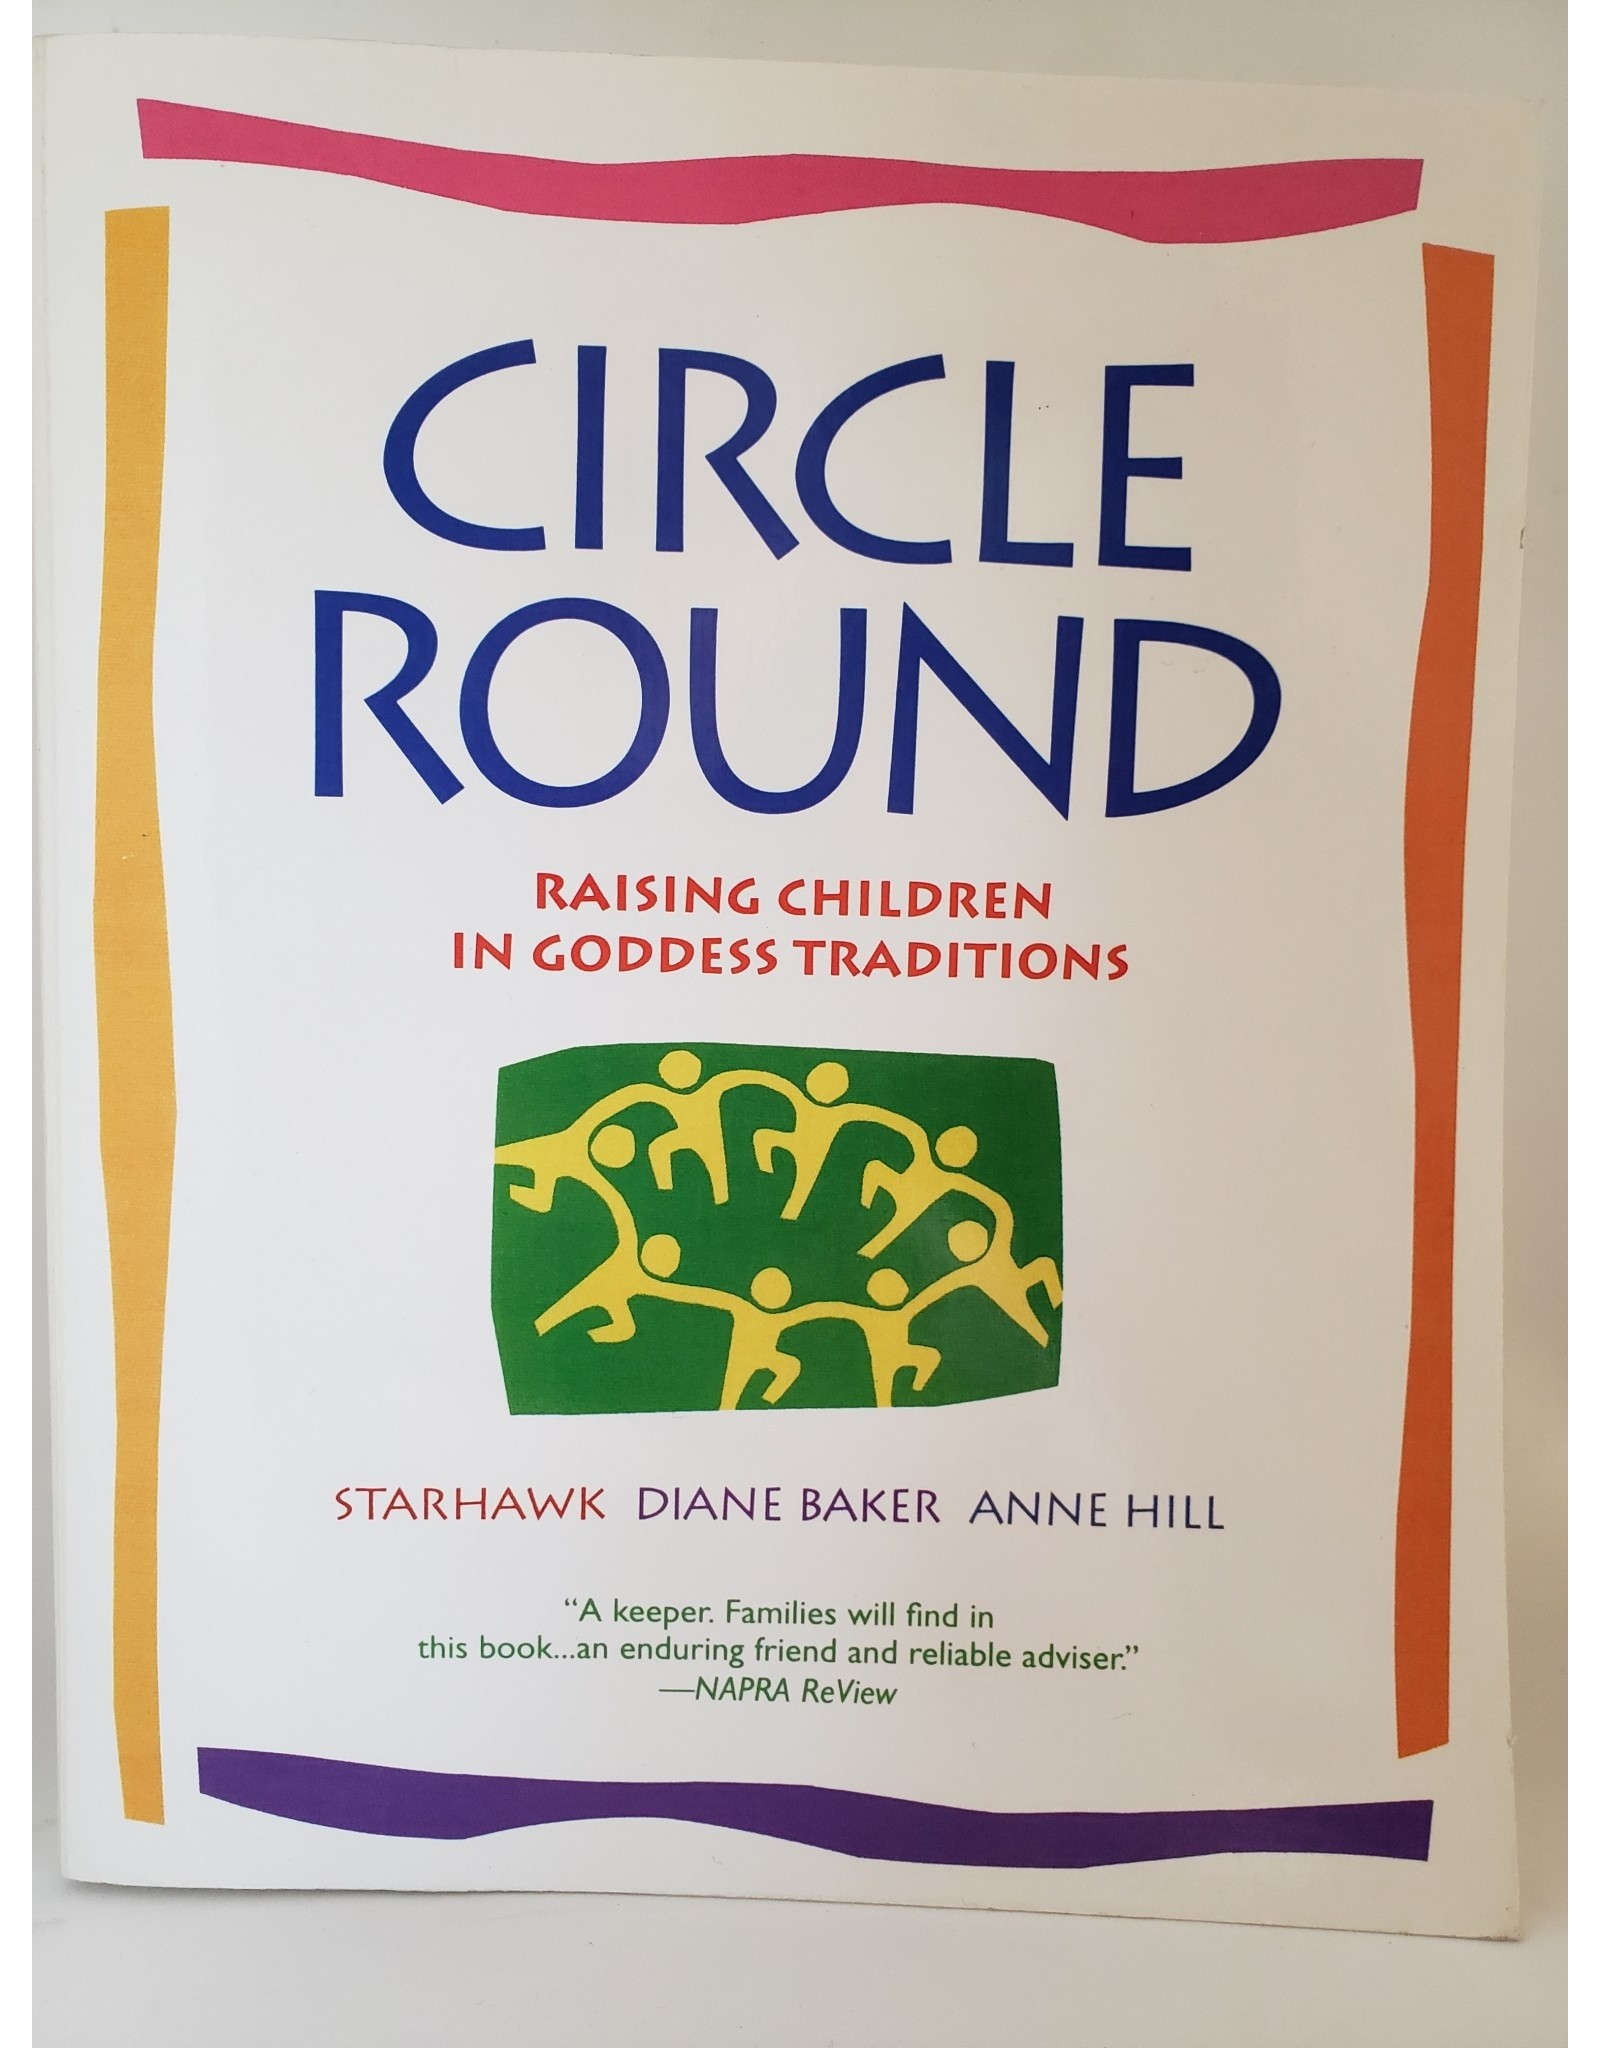 Circle Round by Starhawke, Diane Baker, and Anne Hill